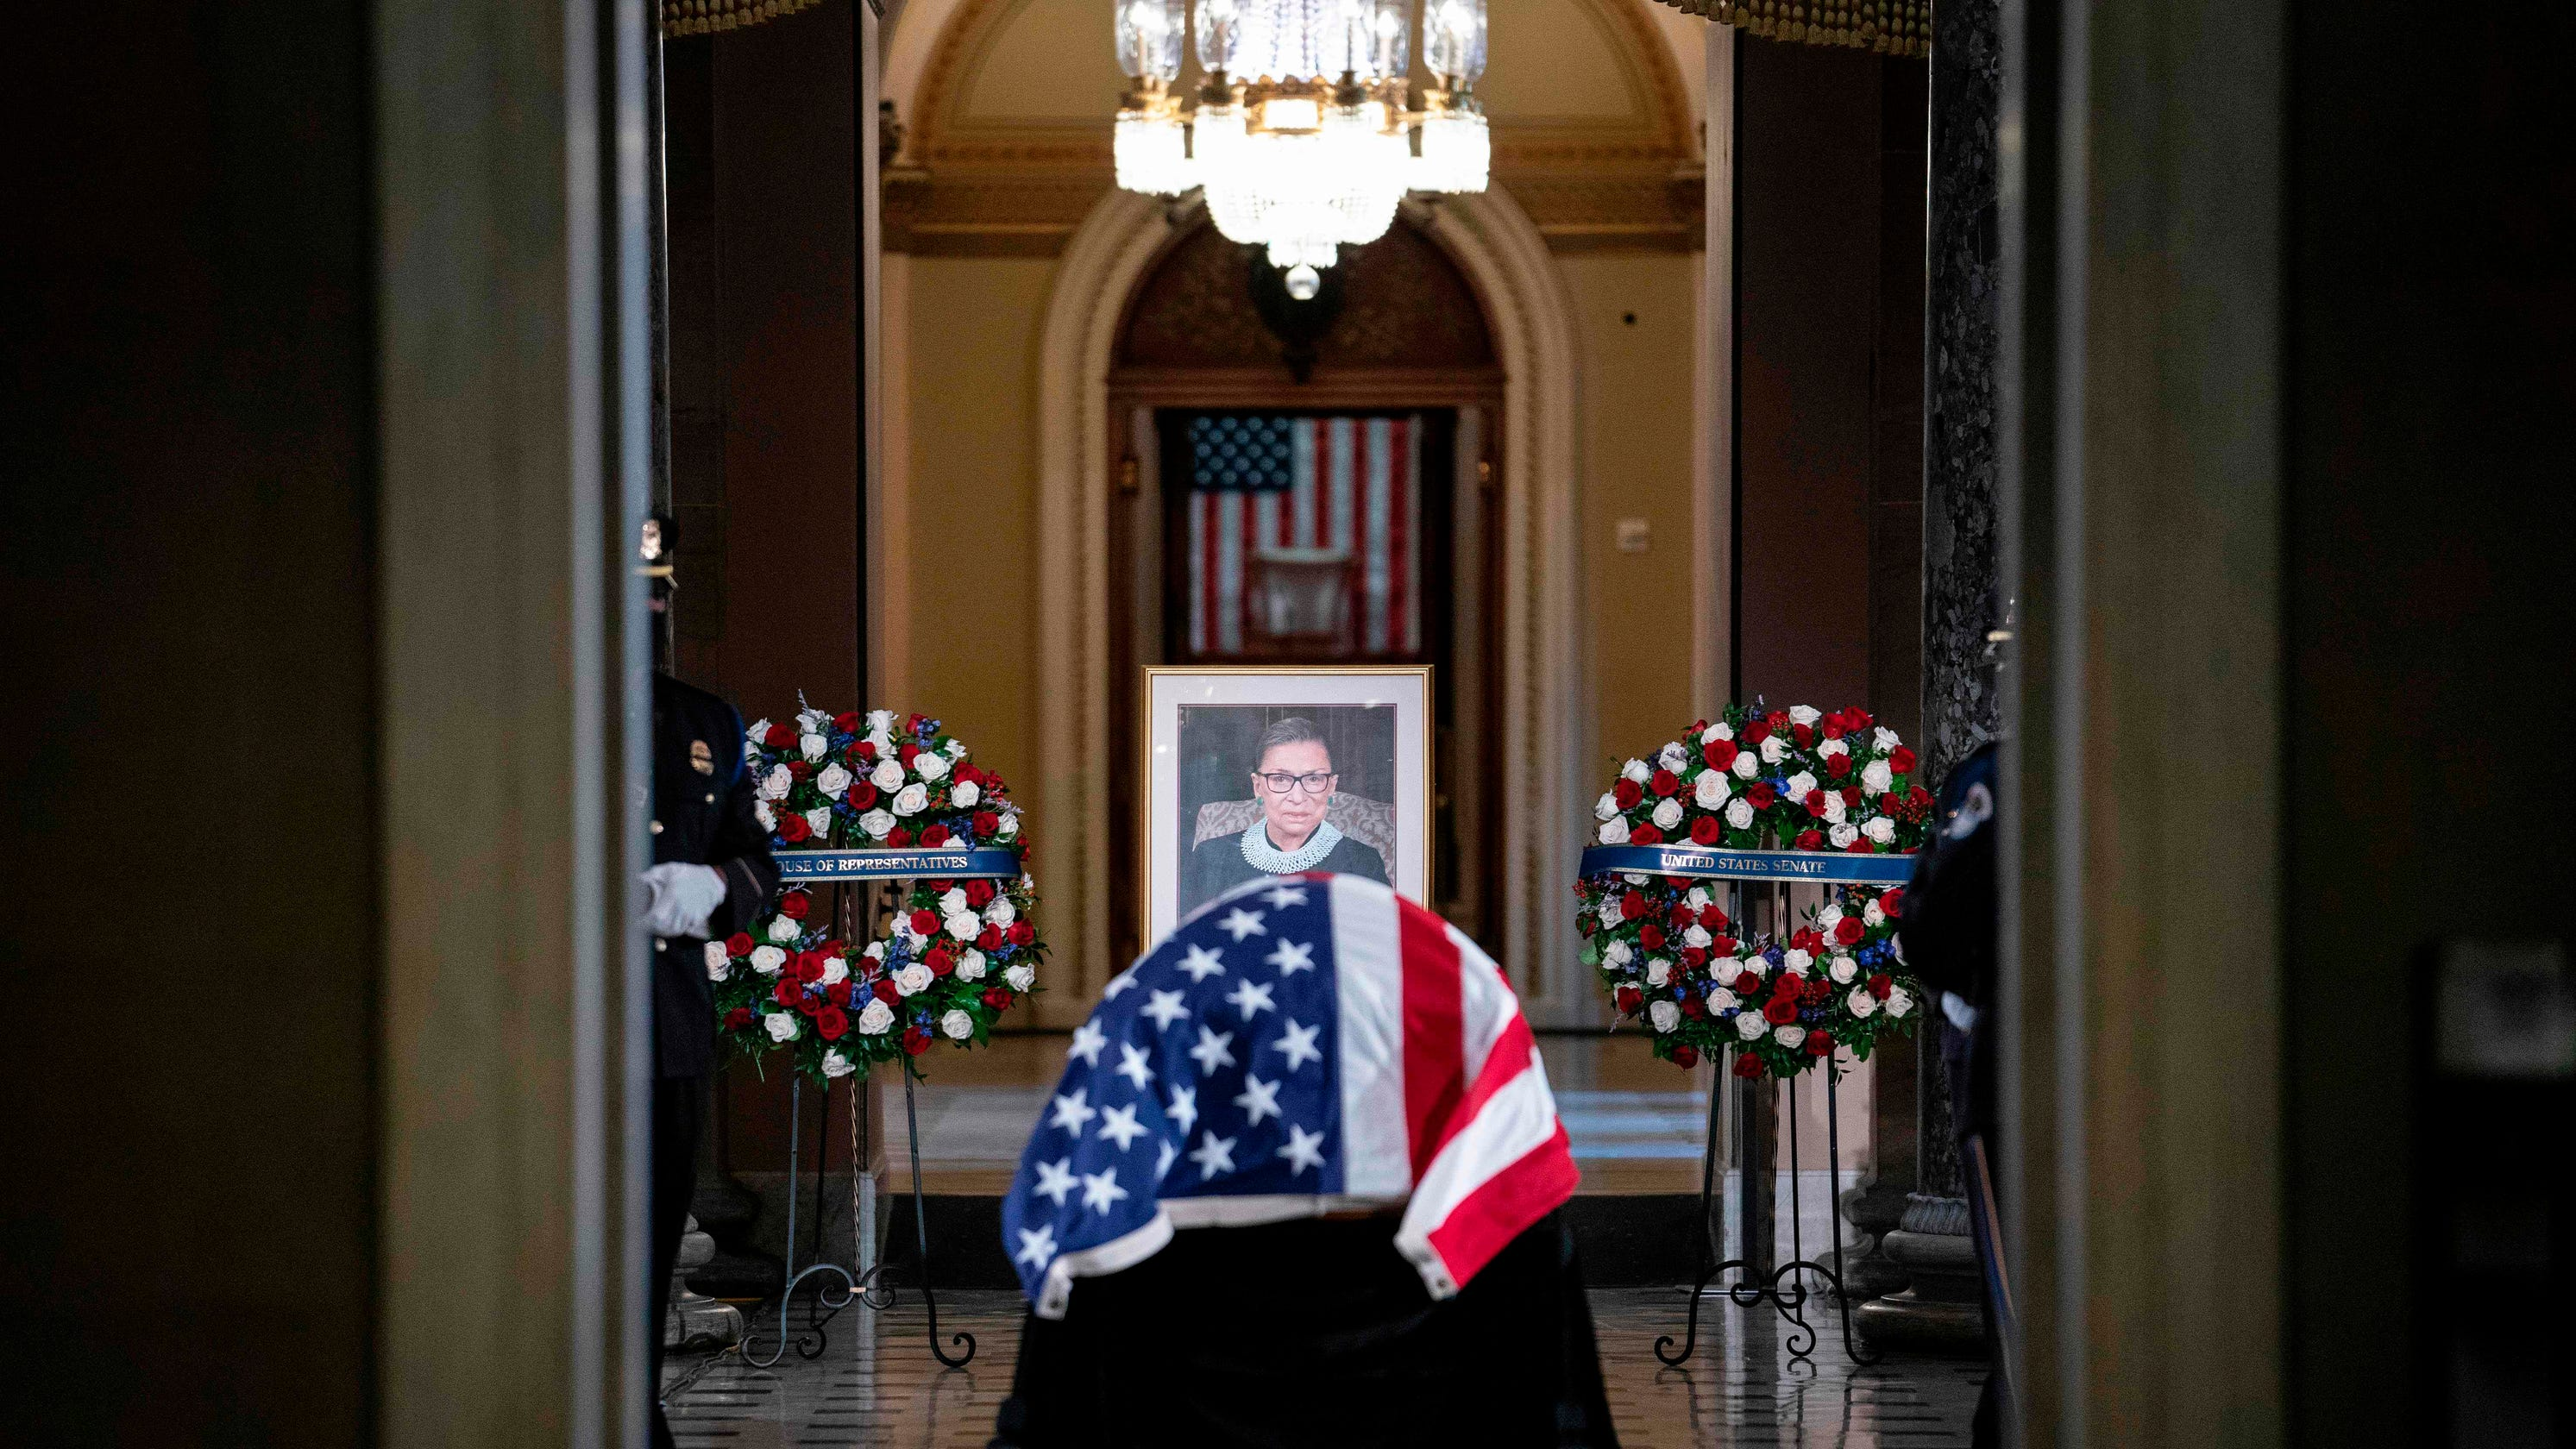 Ruth Bader Ginsburg makes history as the first woman, Jewish person to lie in state at Capitol ceremony